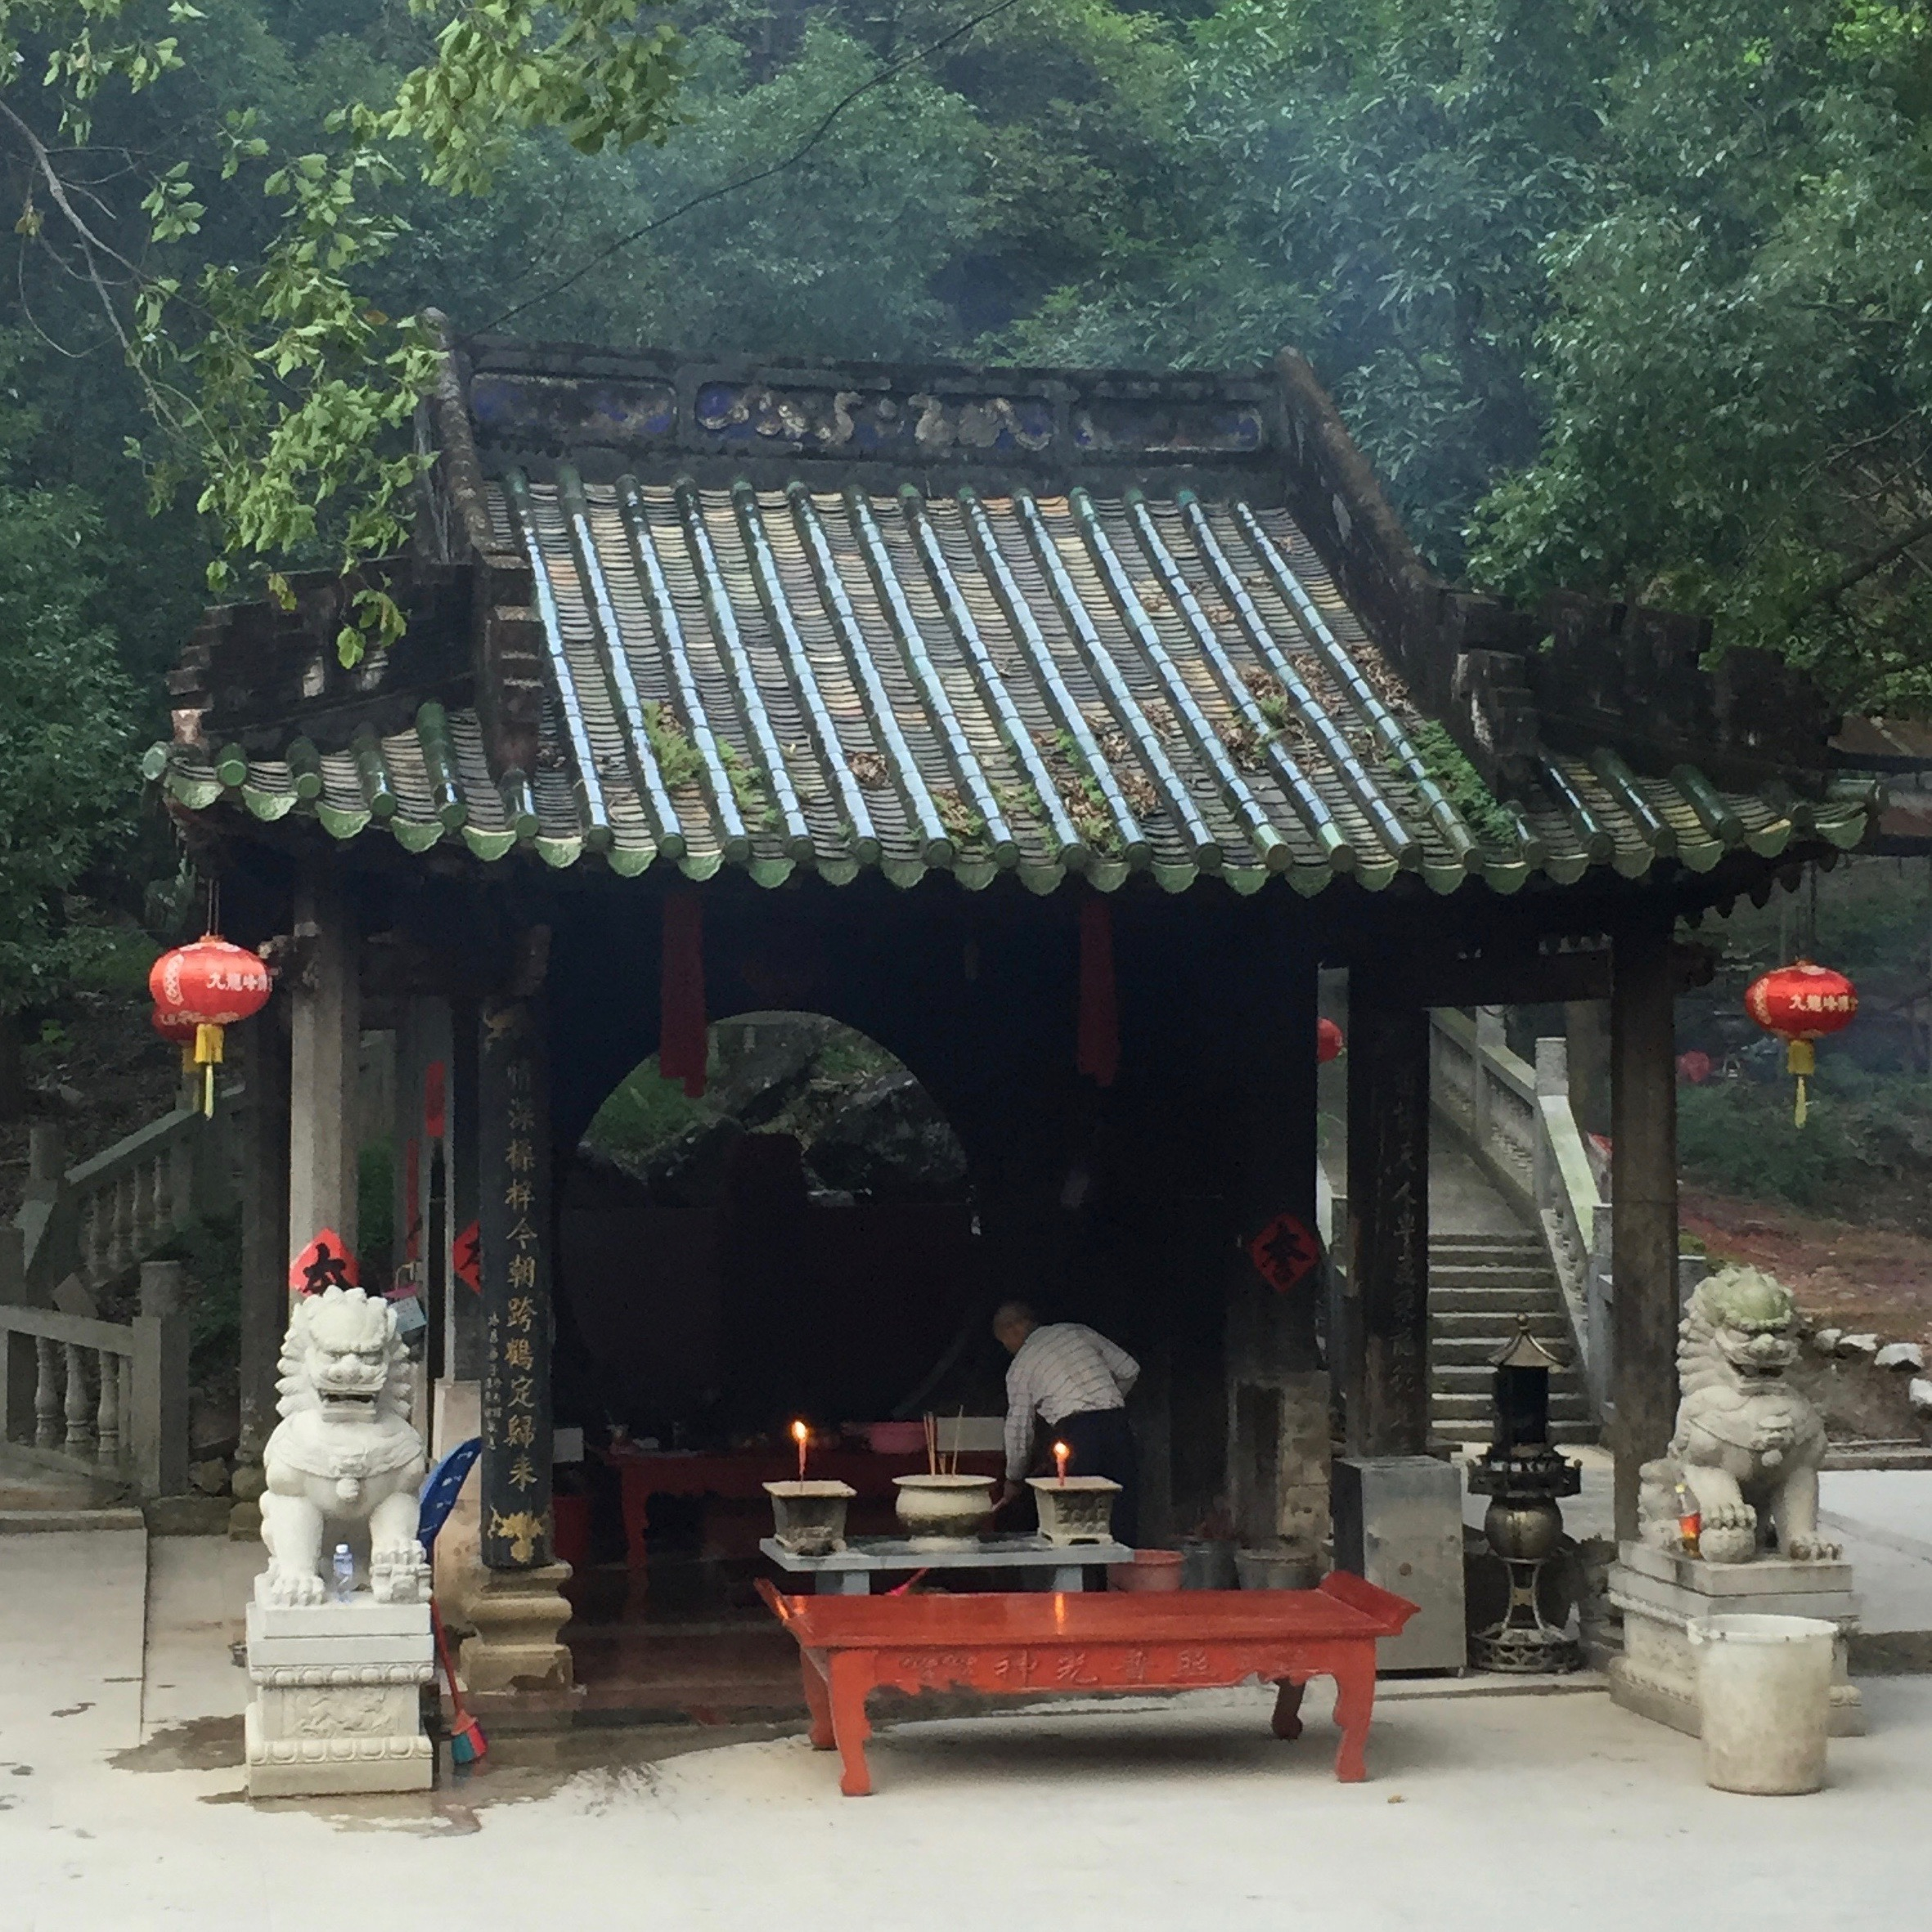 This is the first shrine as you enter the shrine complex. You can see the steps starting just behind it.